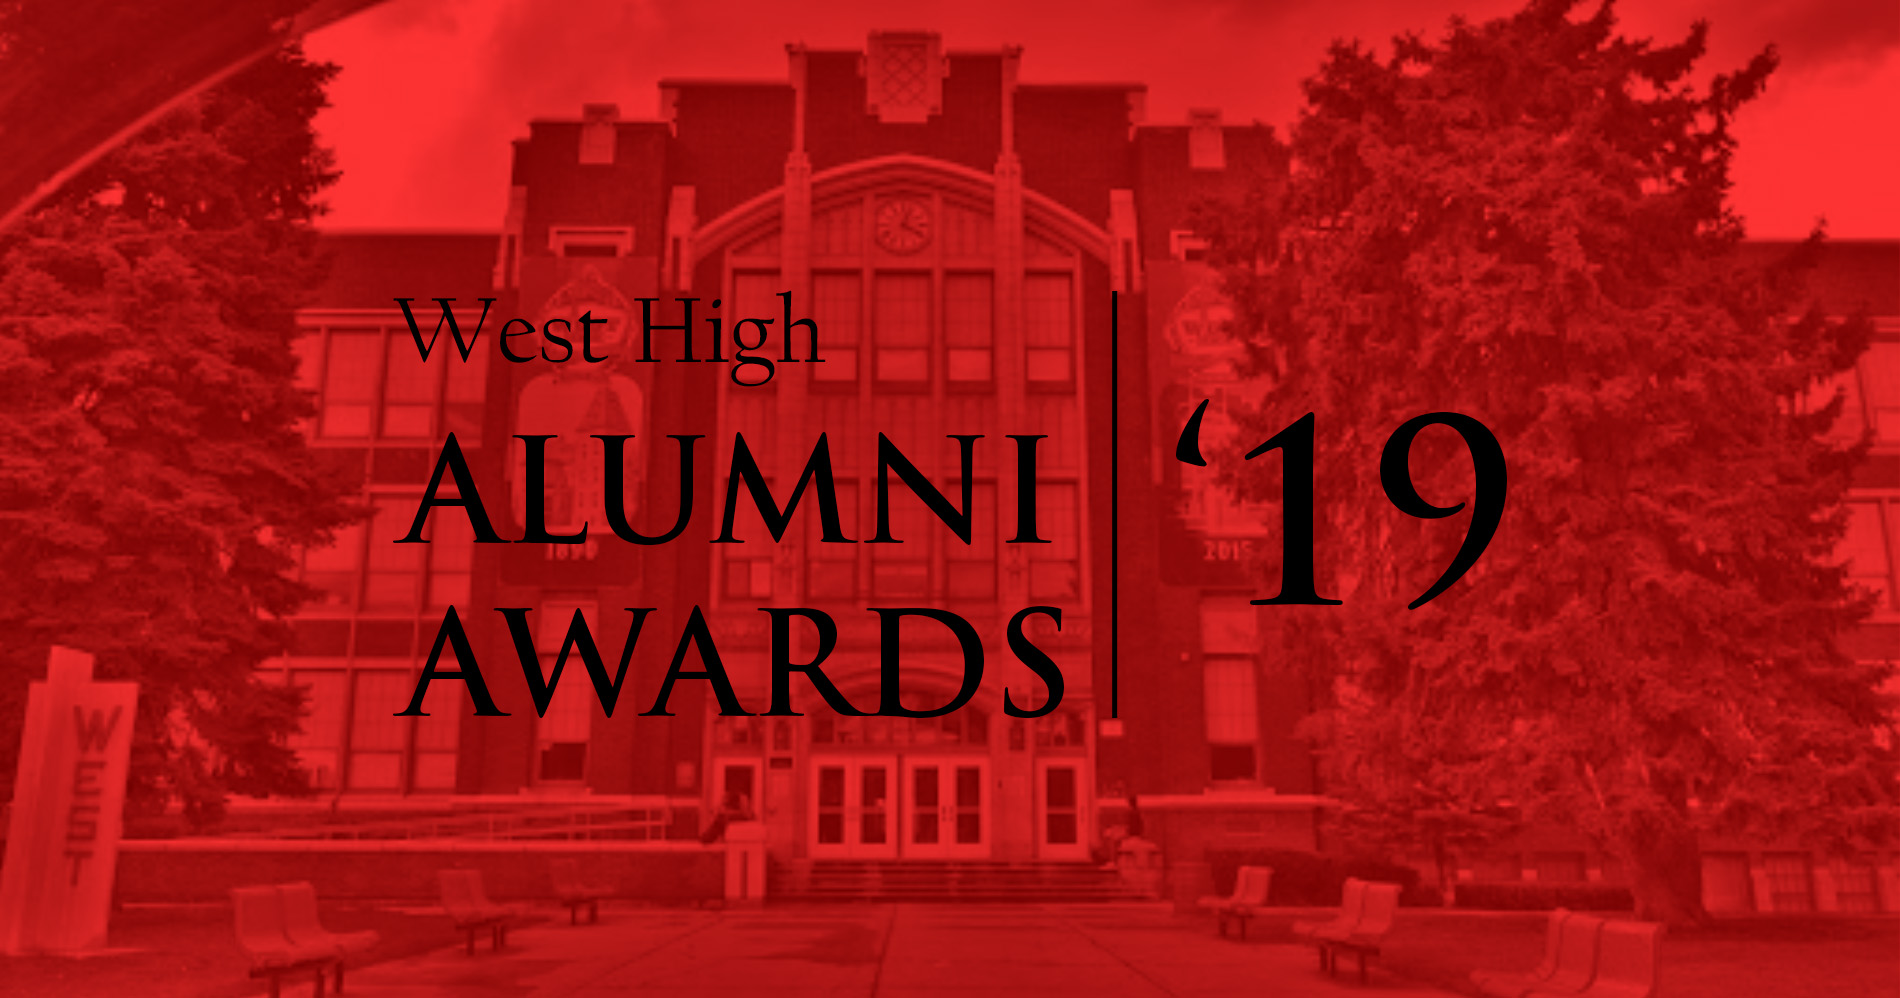 Nomination Deadline for 2019 West High Alumni Awards extended to April 5